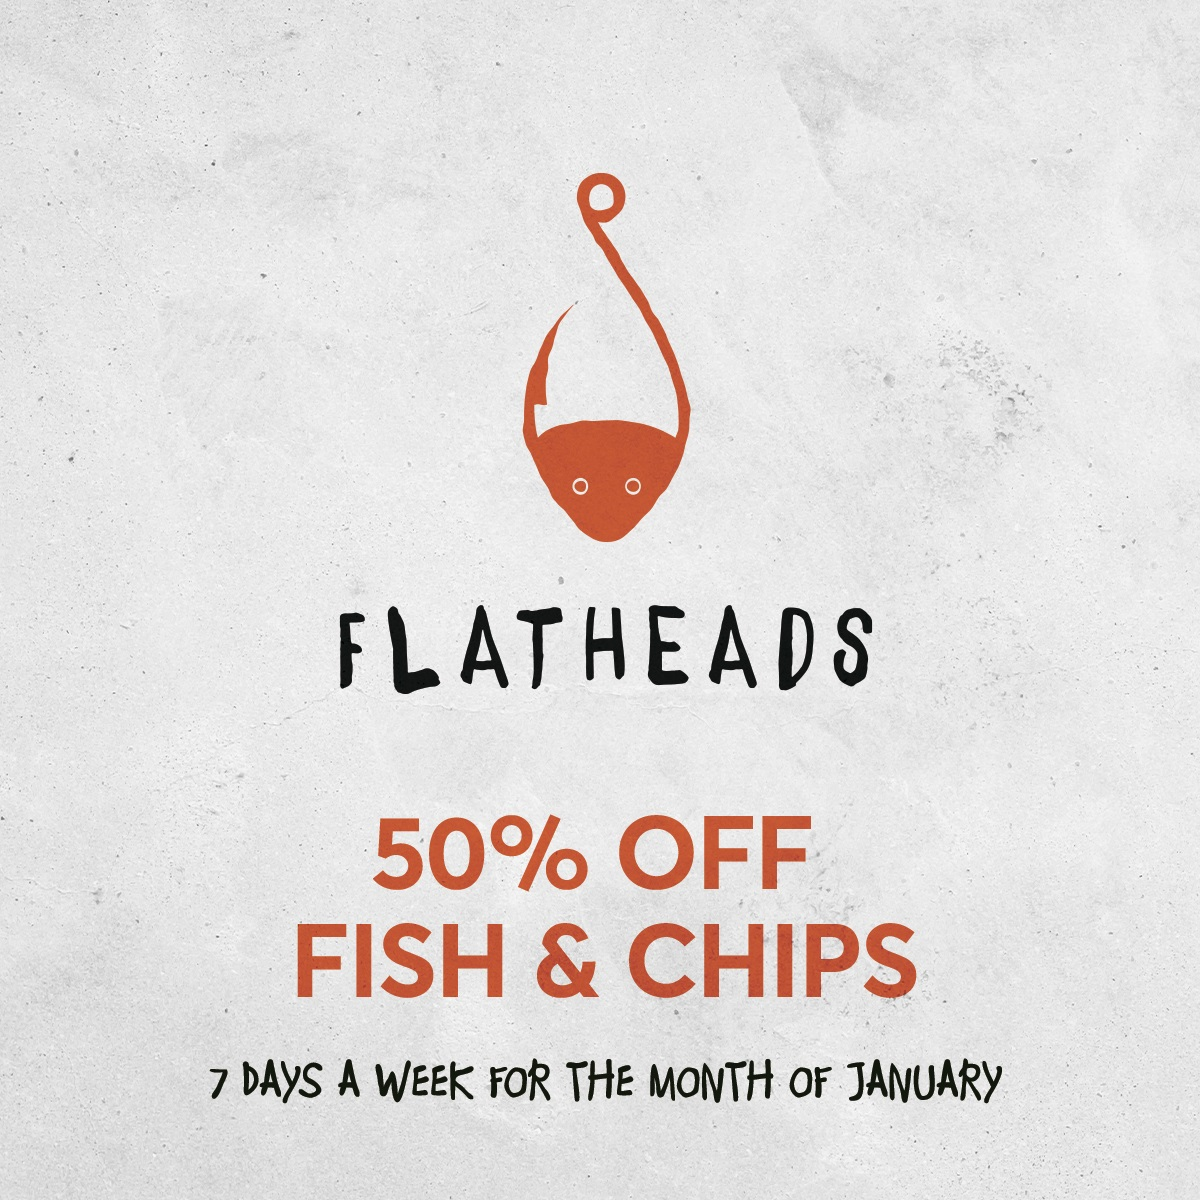 50% OFF FISH & CHIPS Square